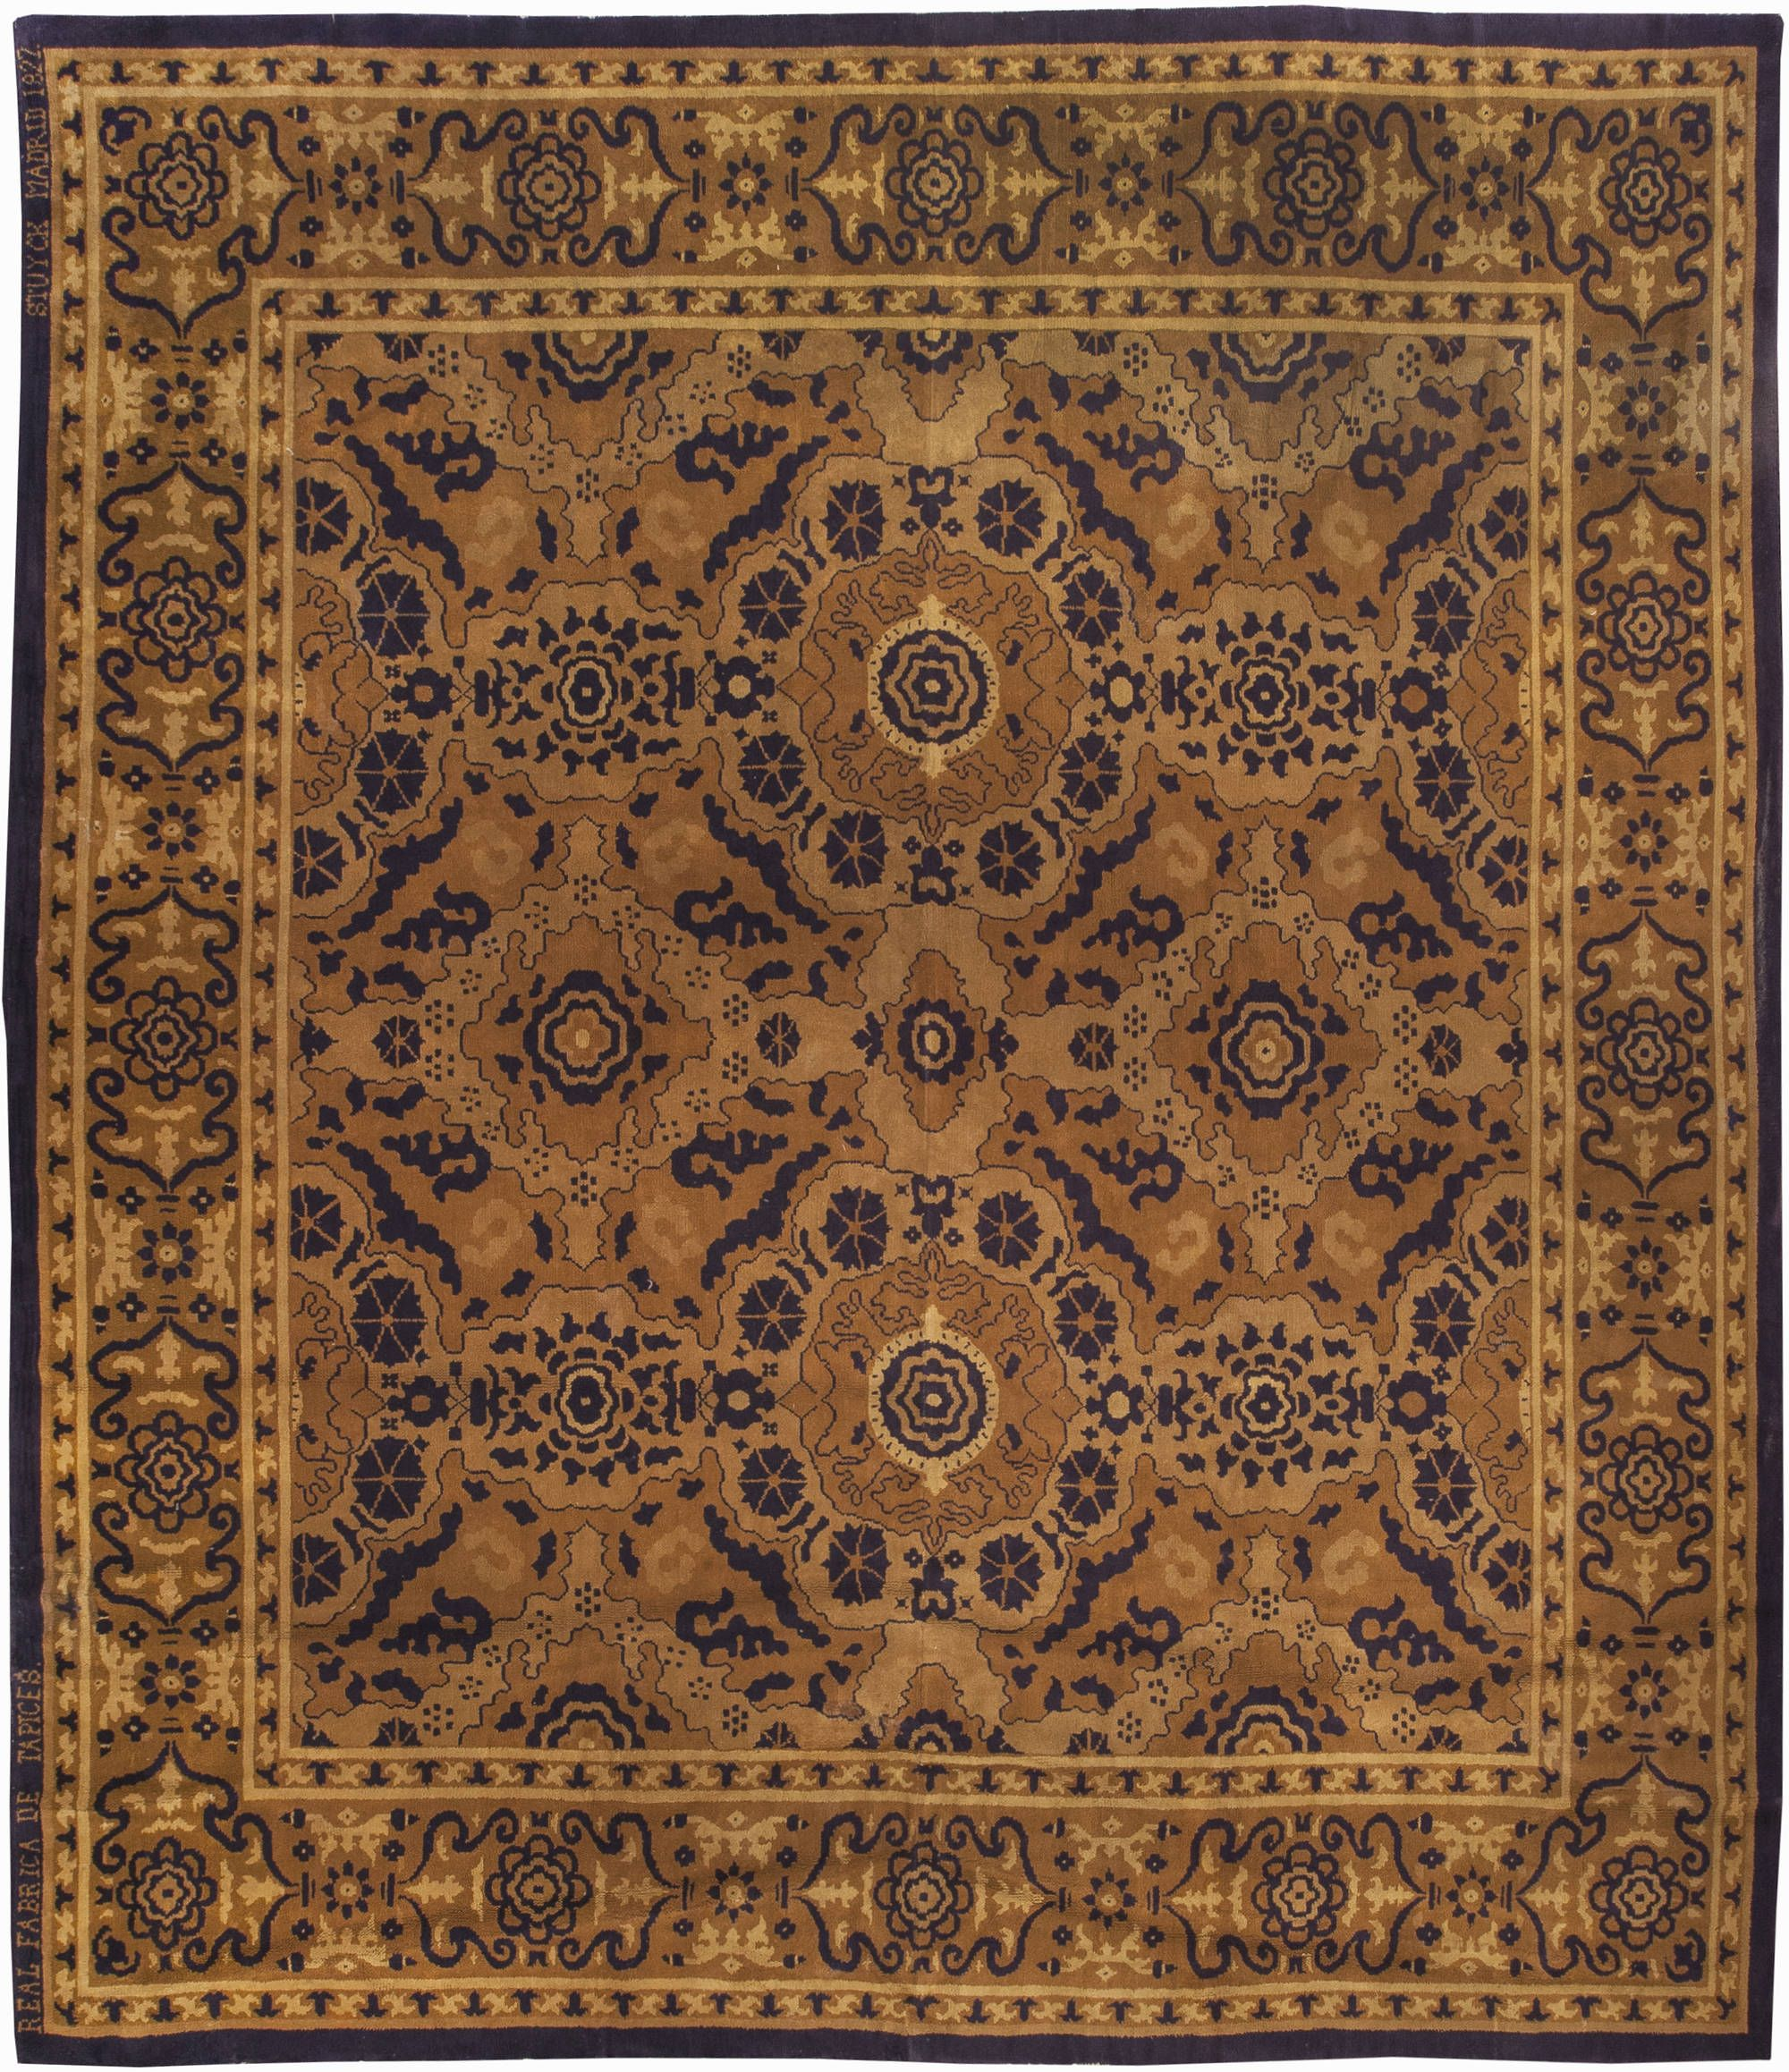 Vintage Rugs Rug Spanish For Modern Or Oriental Interior Decor Living Room